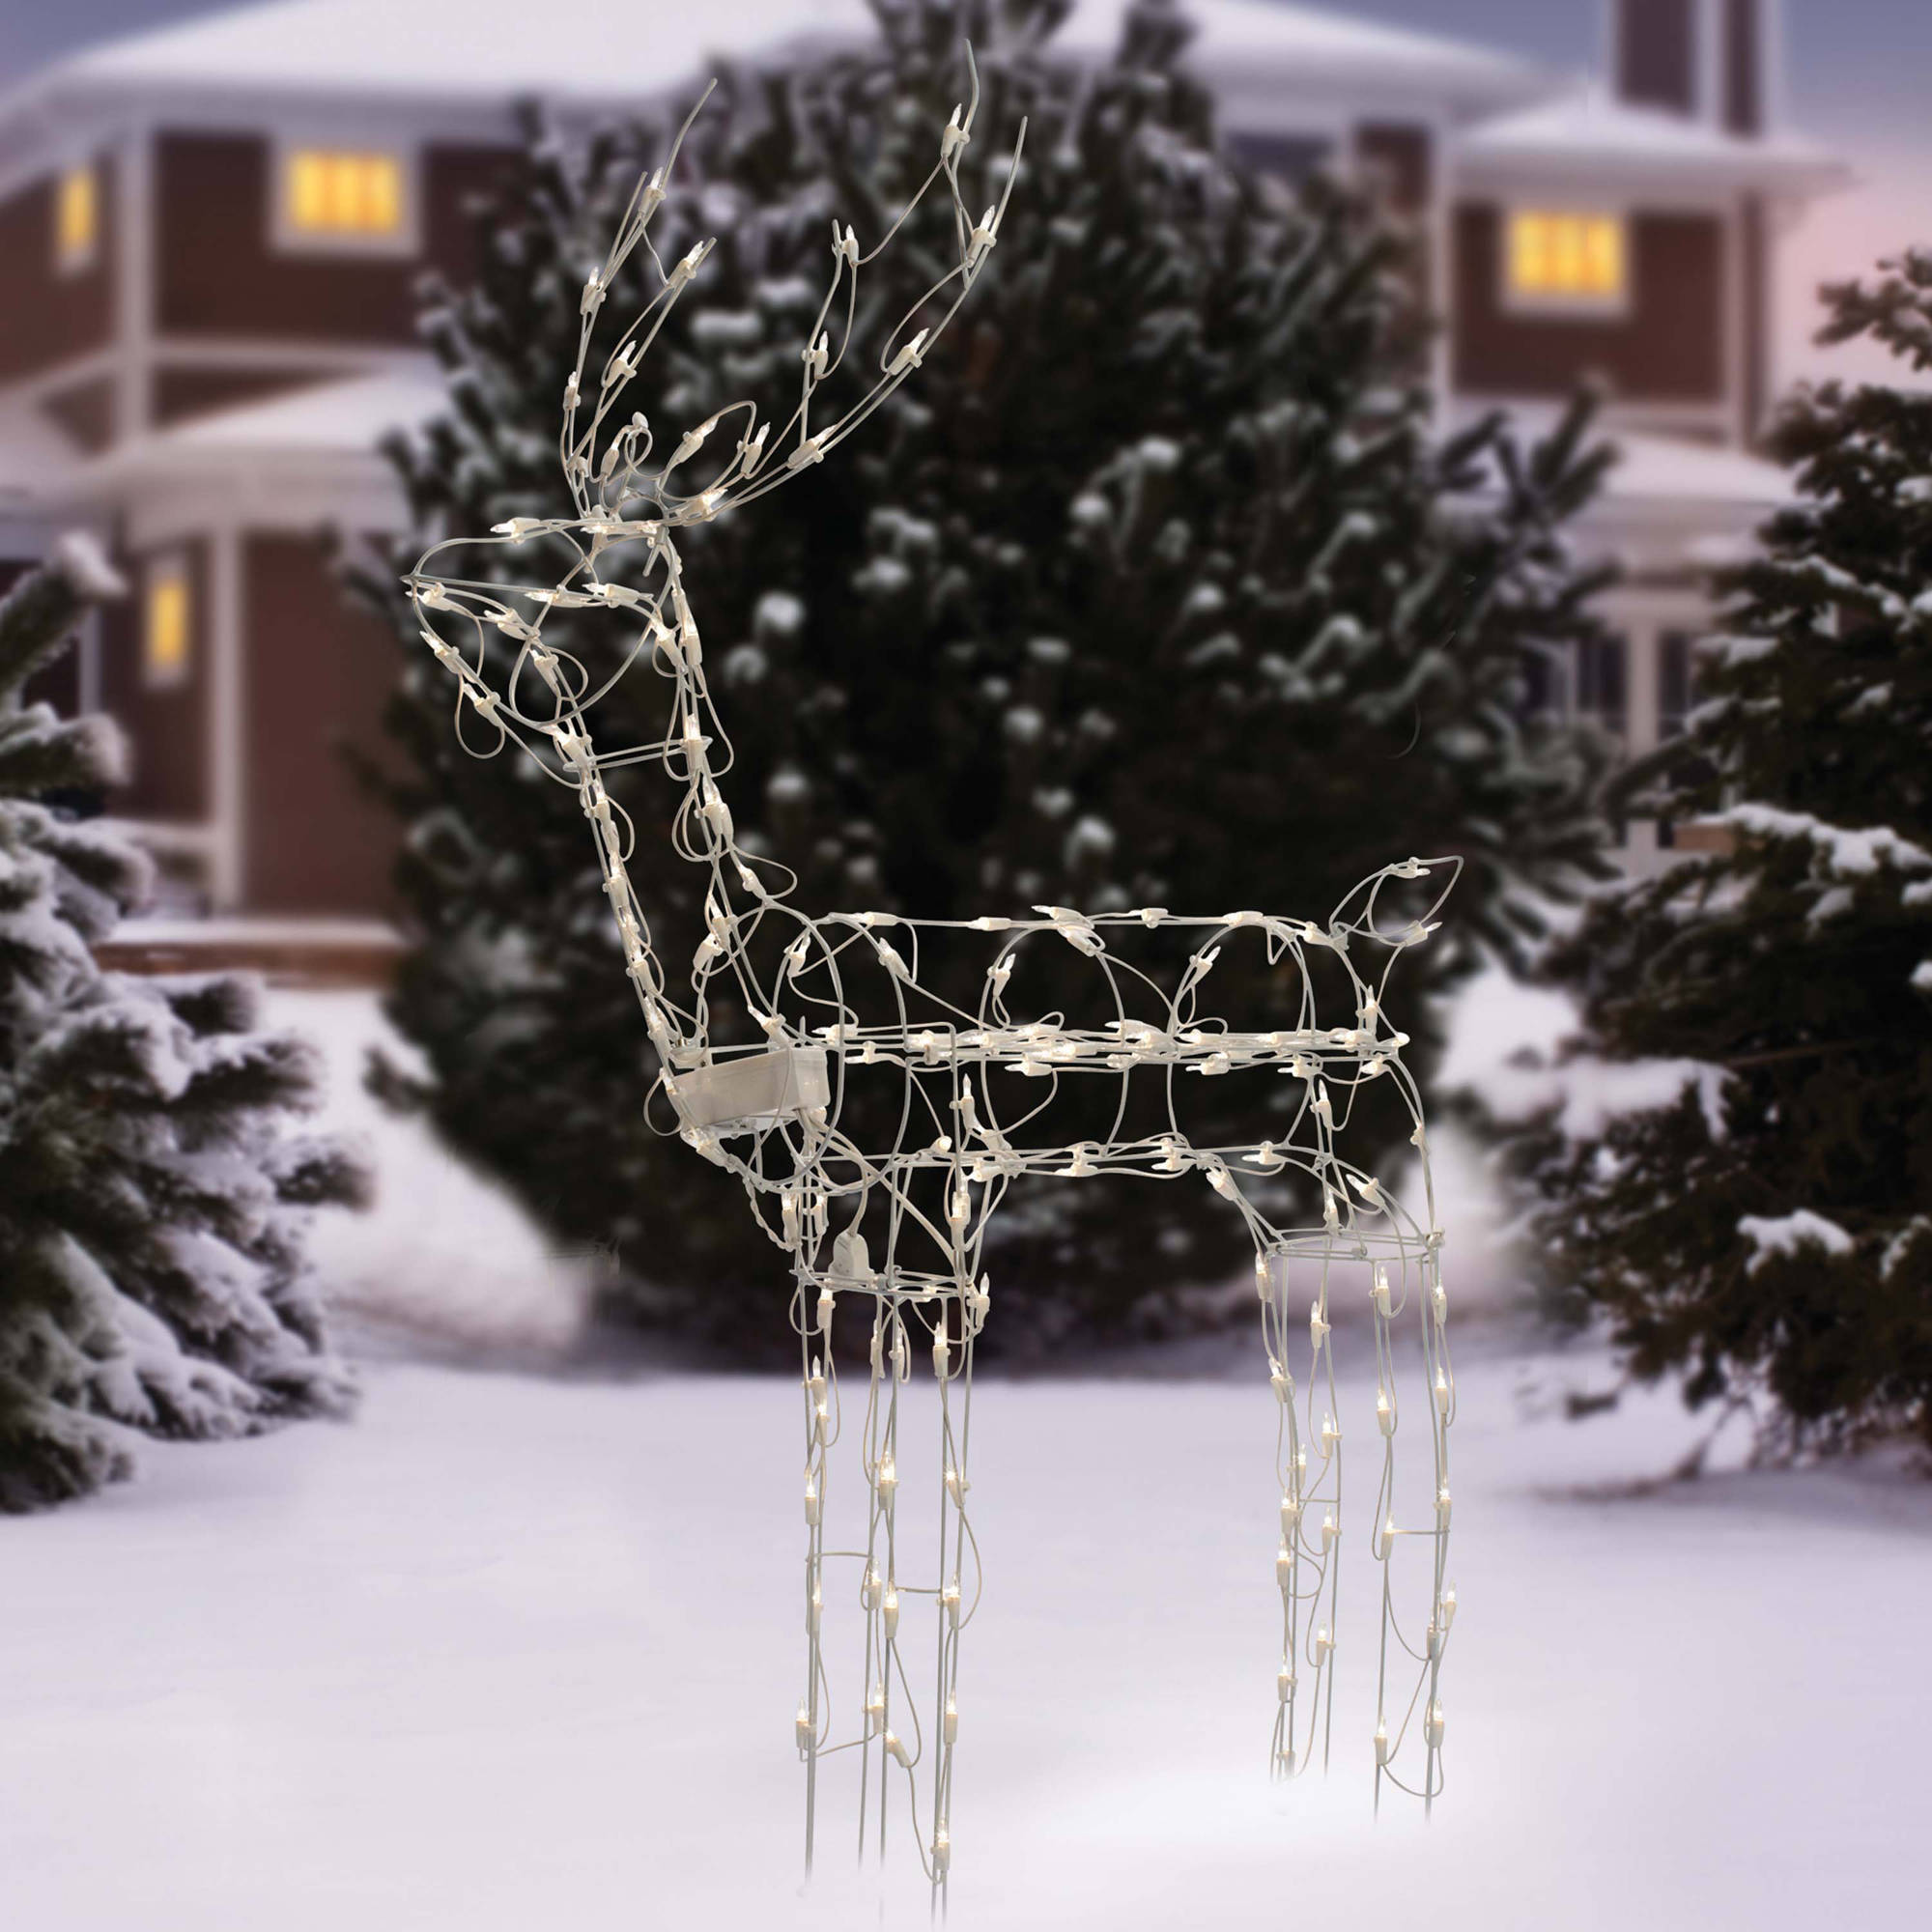 "Holiday Time 48"" Tall Animated Standing Buck Light Sculpture Christmas Decor"